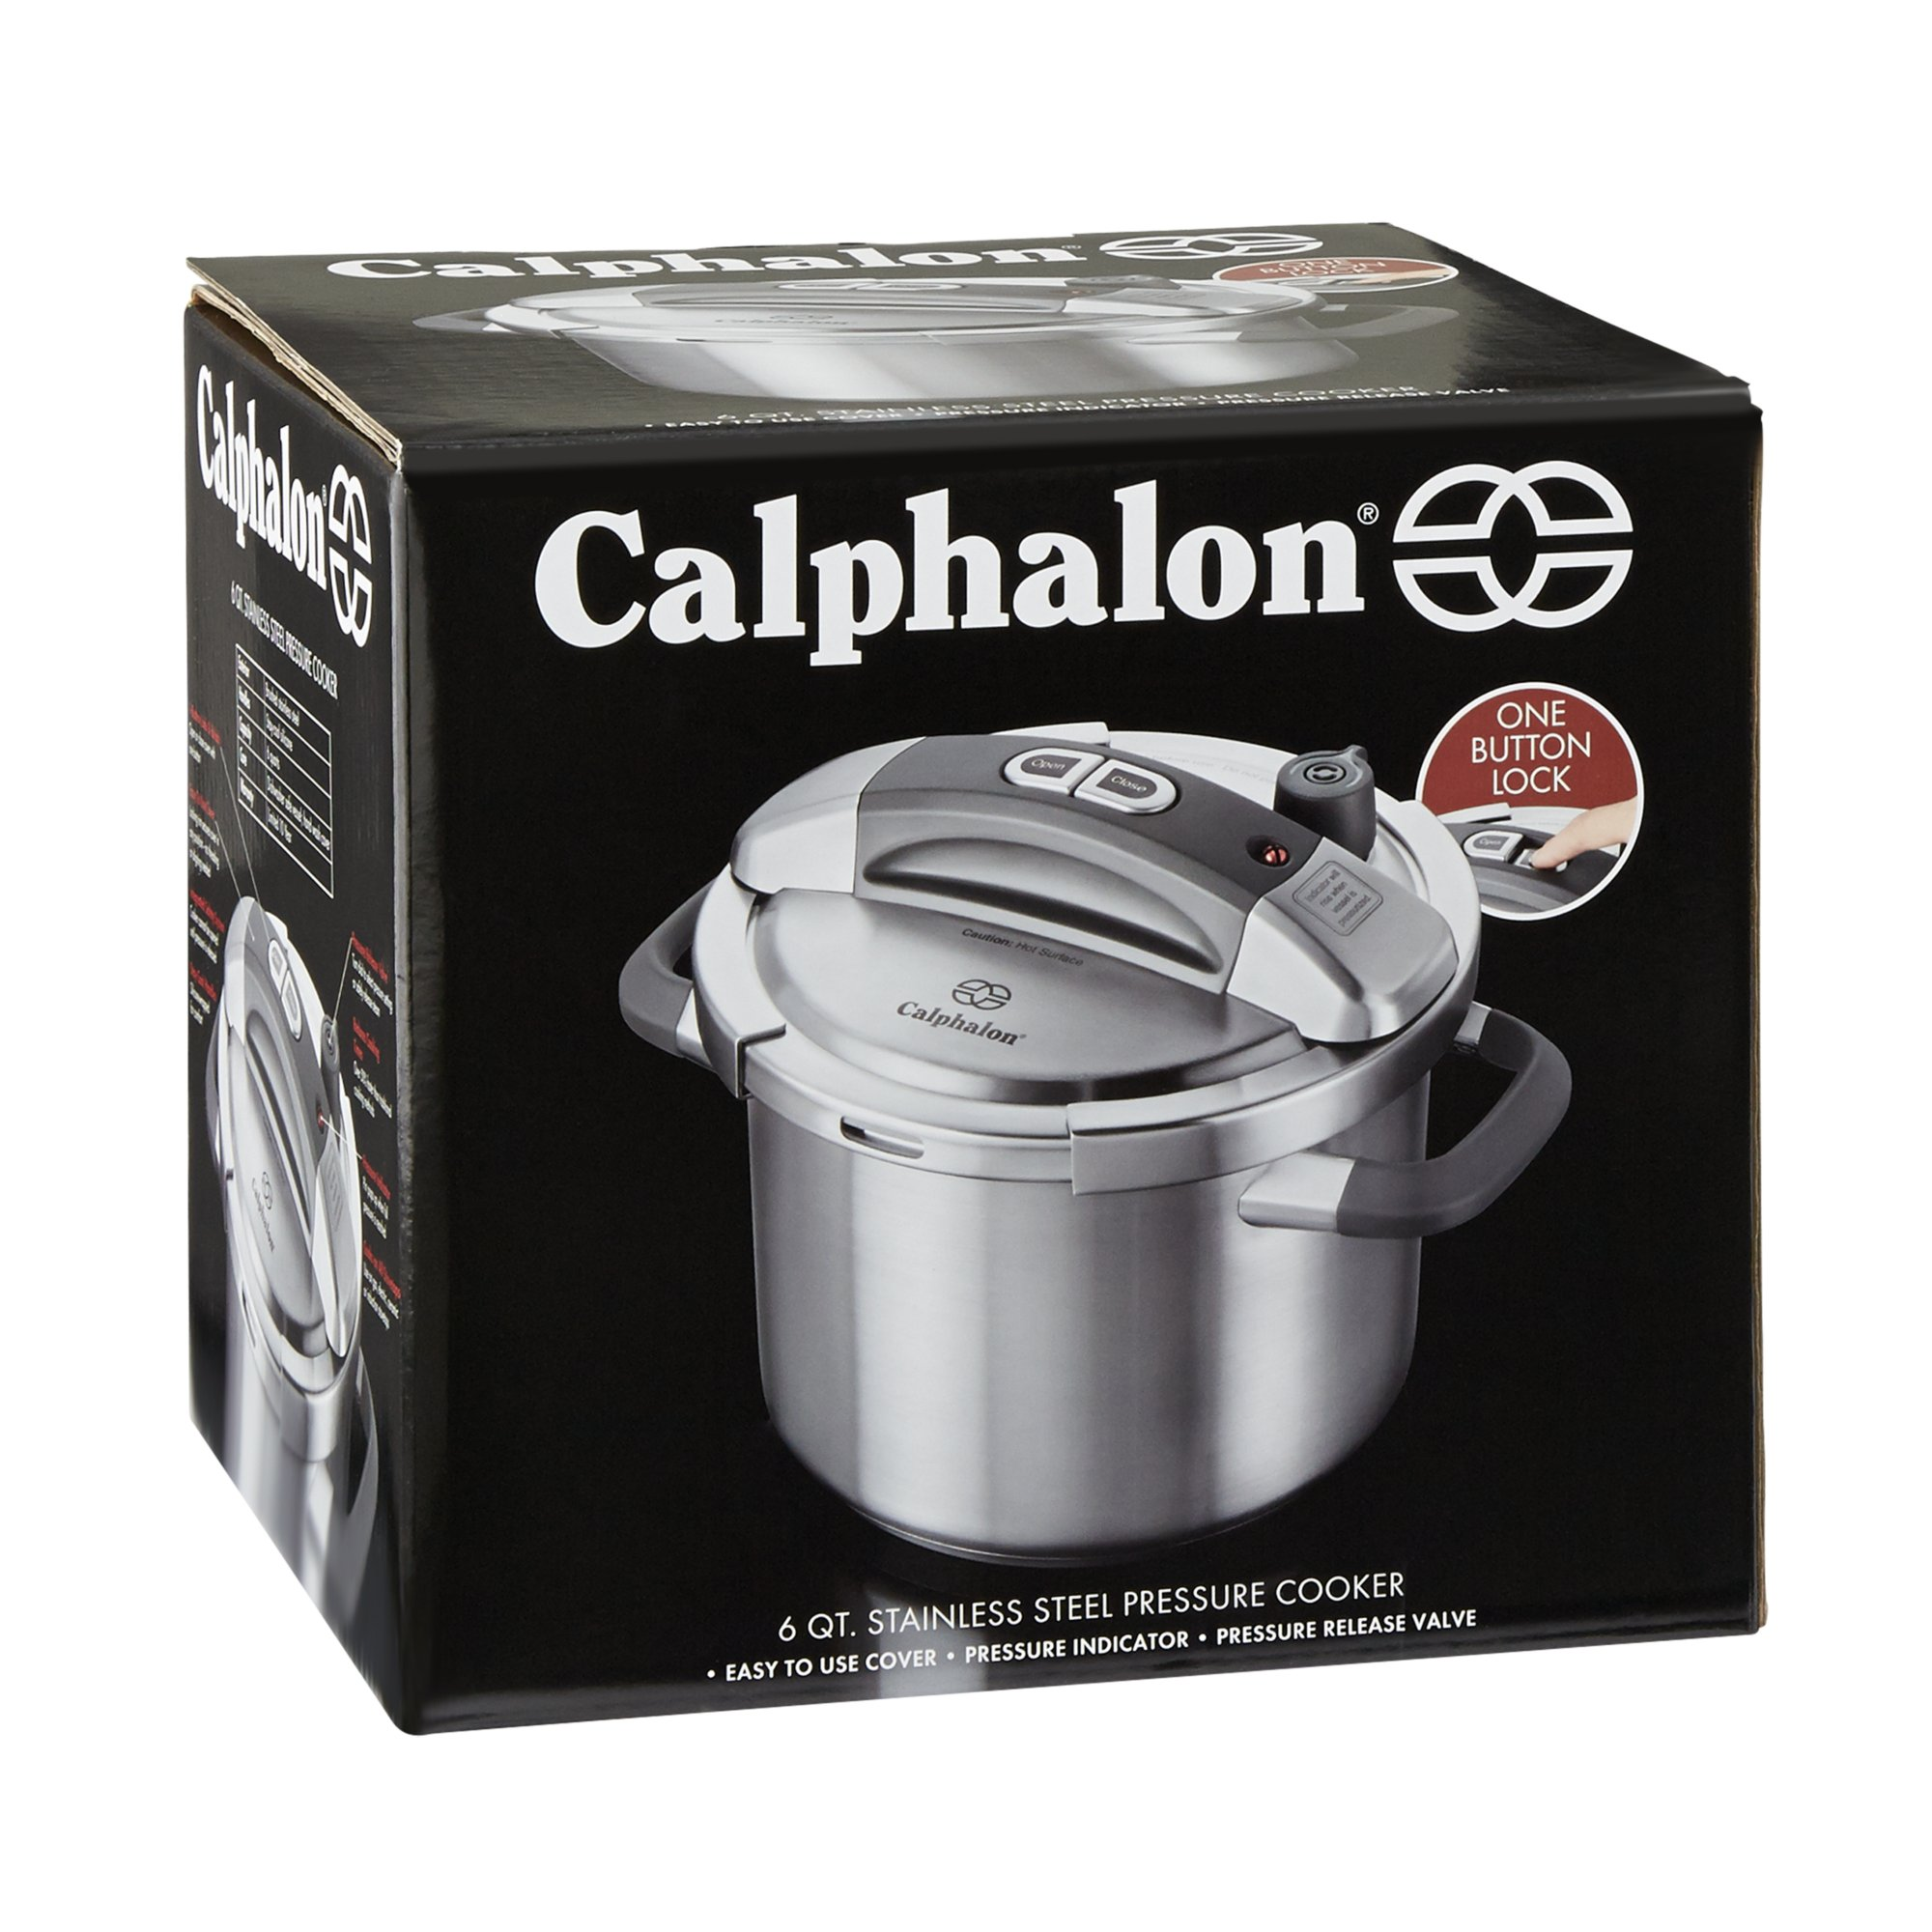 Calphalon 6 Qt. Stainless Steel Pressure Cooker